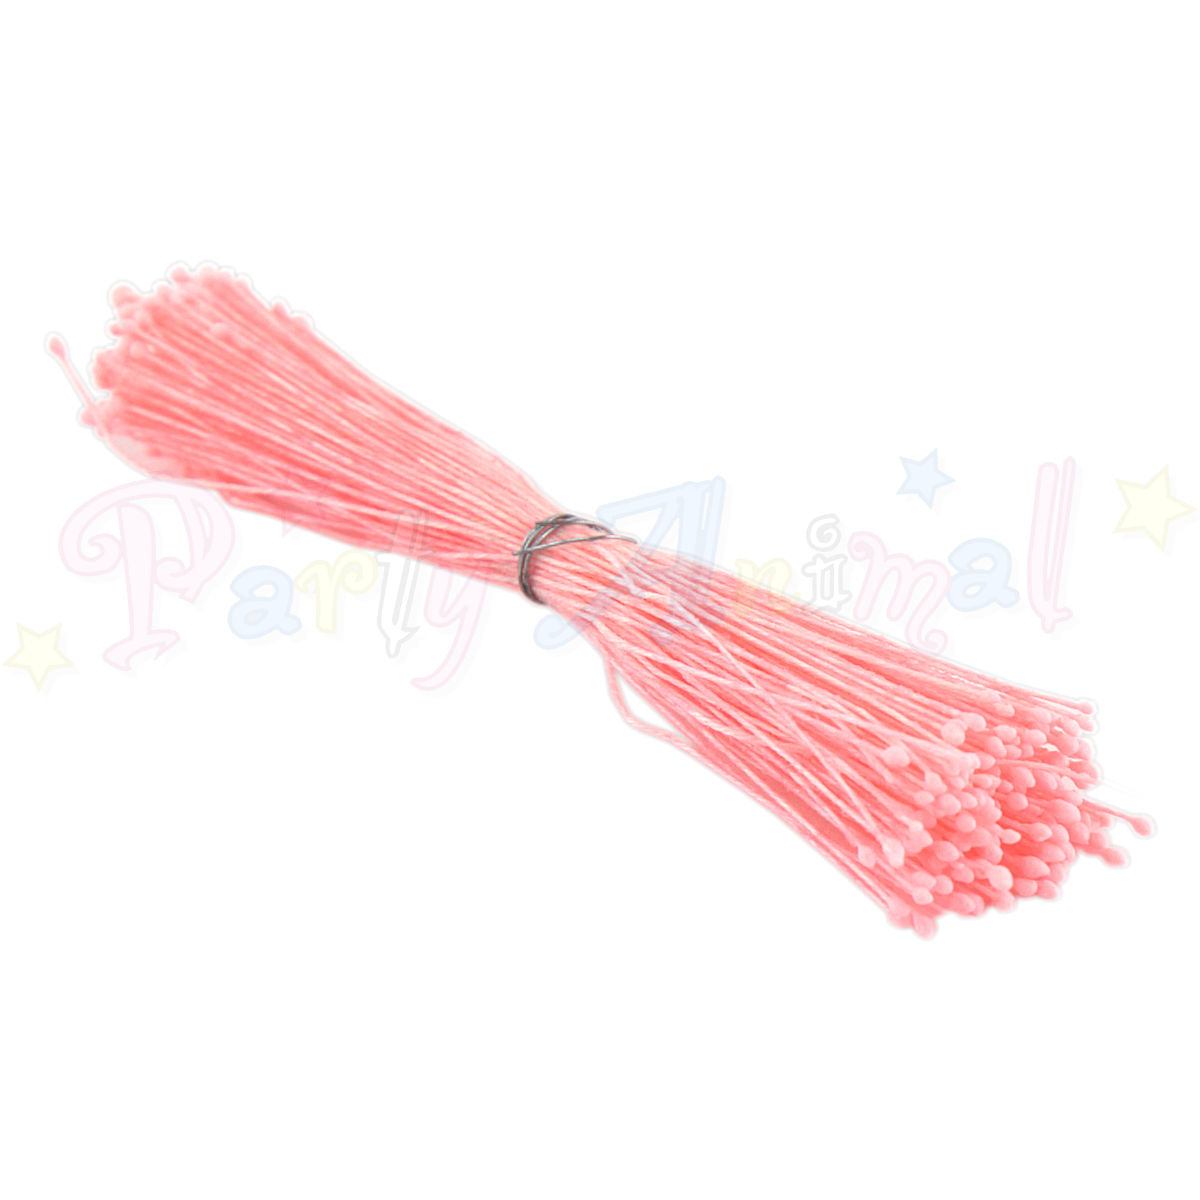 Hamilworth  Flower Stamen Matt Baby Pink P17 (0.5mm head)